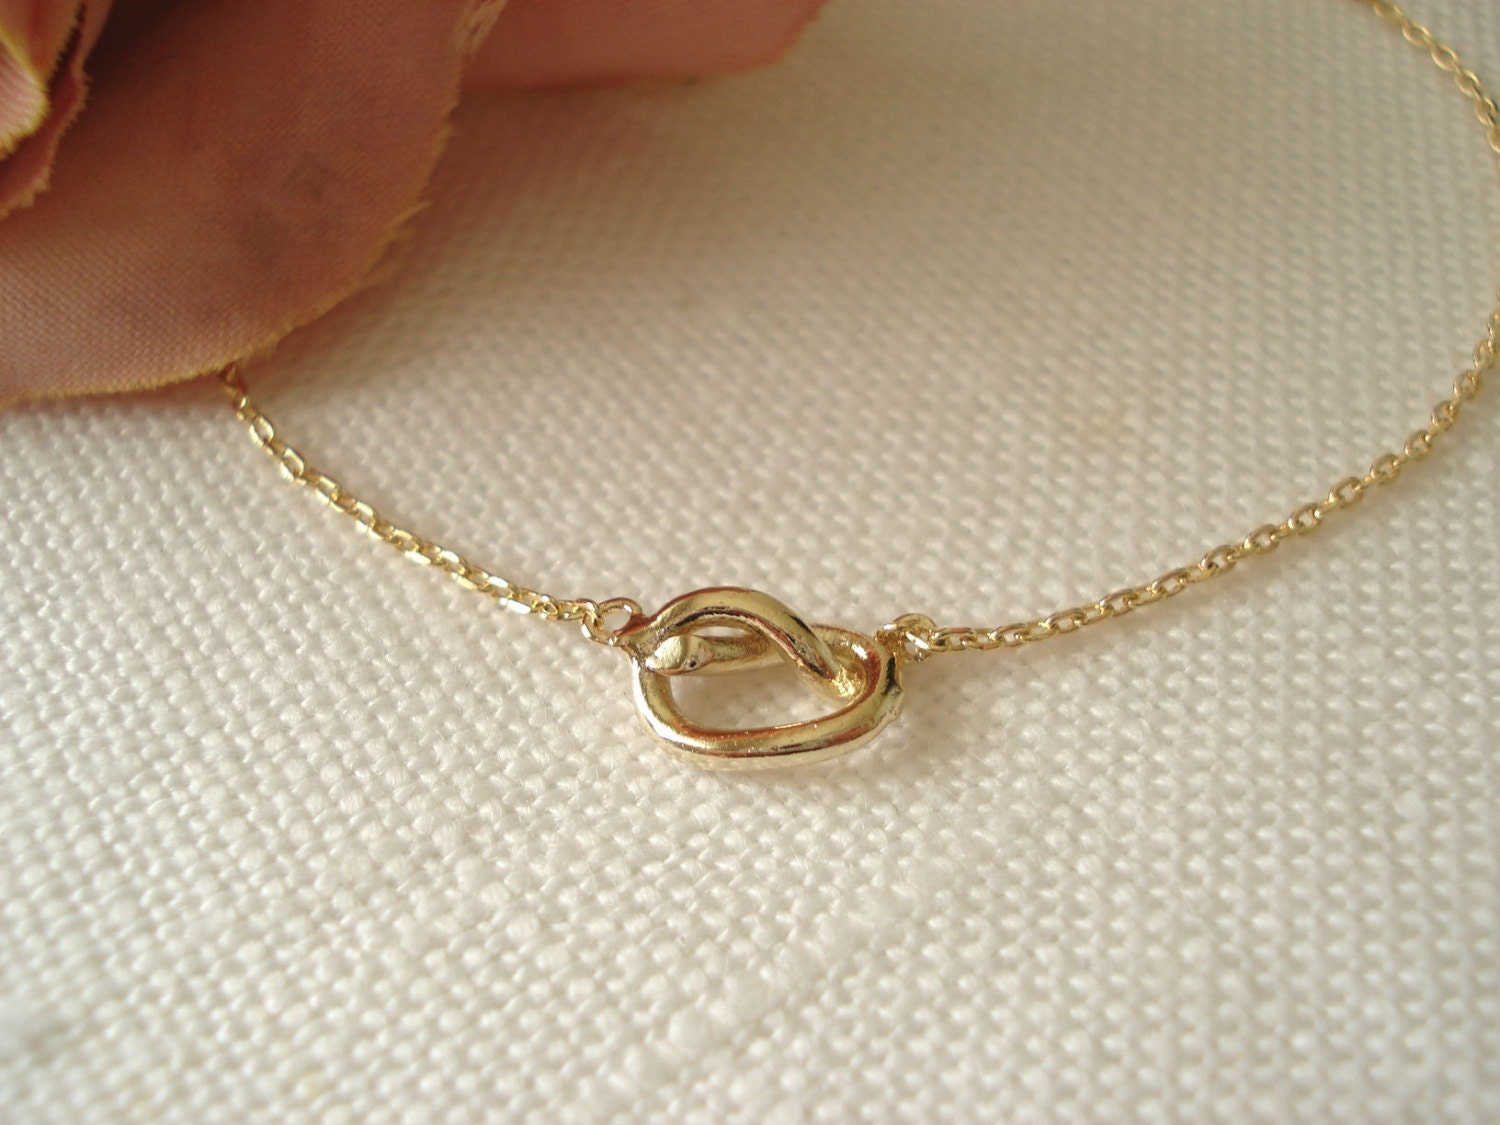 Tiny Gold Knot Necklace..simple Handmade Jewelry Everyday